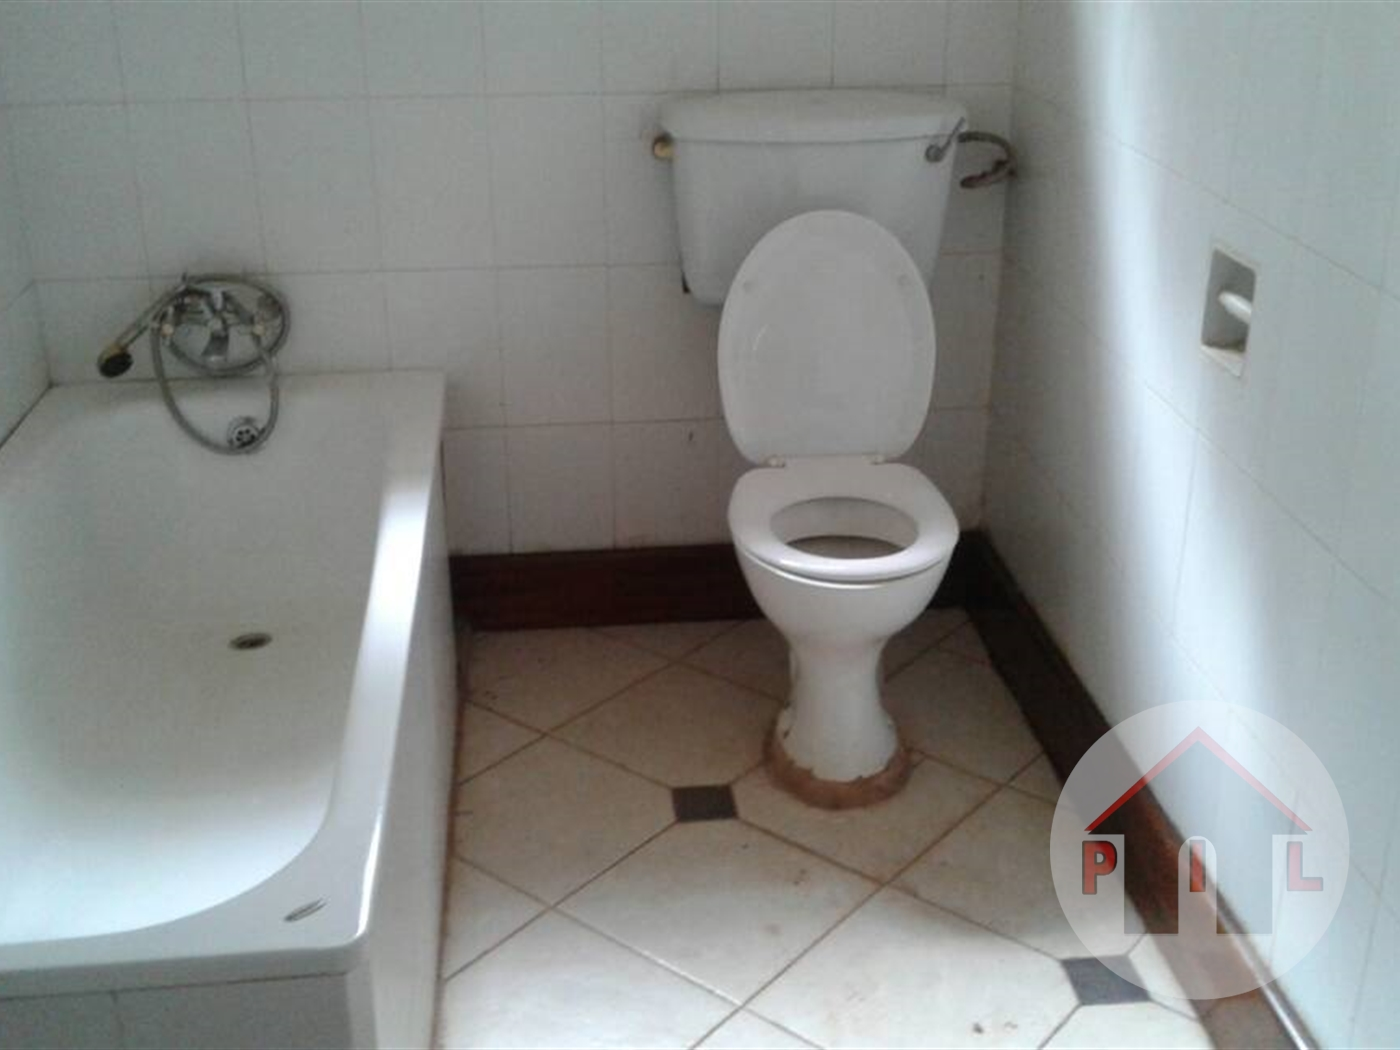 Bathroom (Toilet)